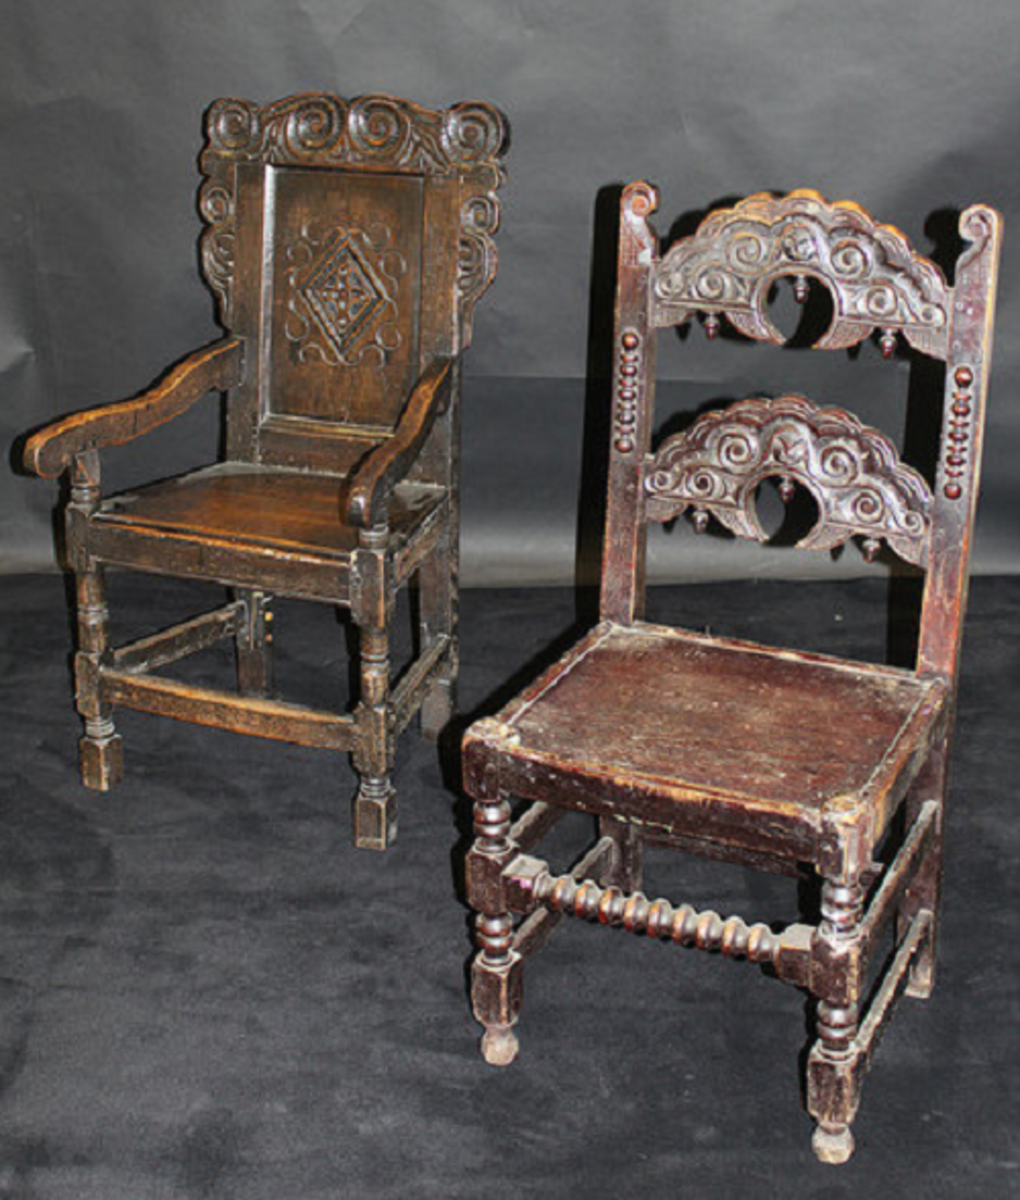 Wainscot chairs with elaborately carved wooden back. These 17th century American furniture comes with or without  arm supports